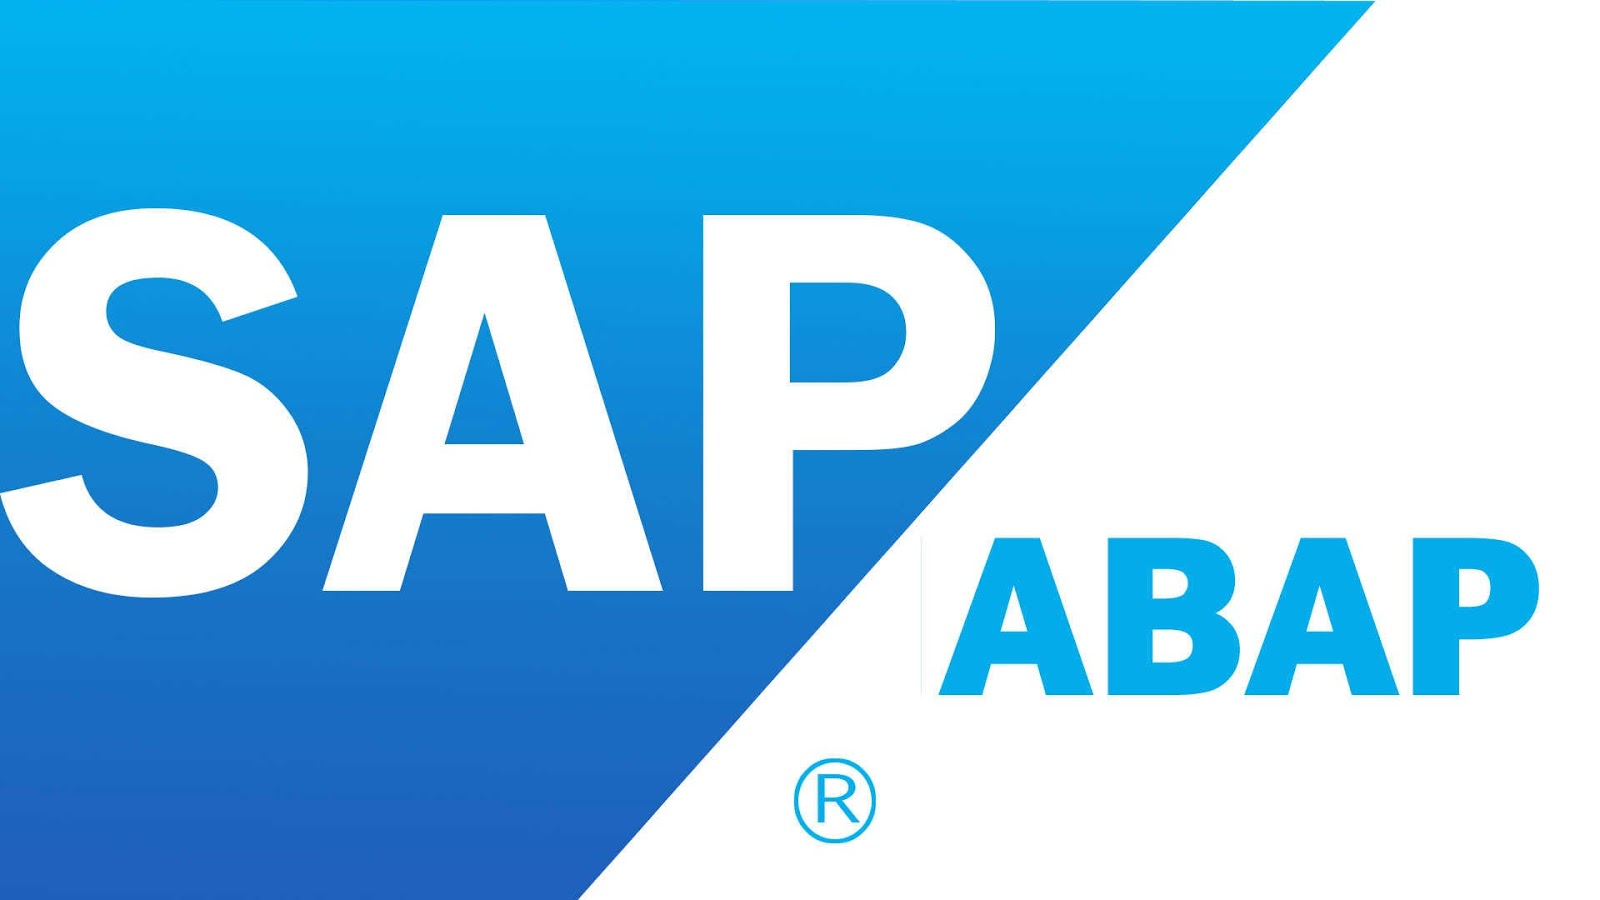 Abap Cds In Sap Bw Sap Online Guides